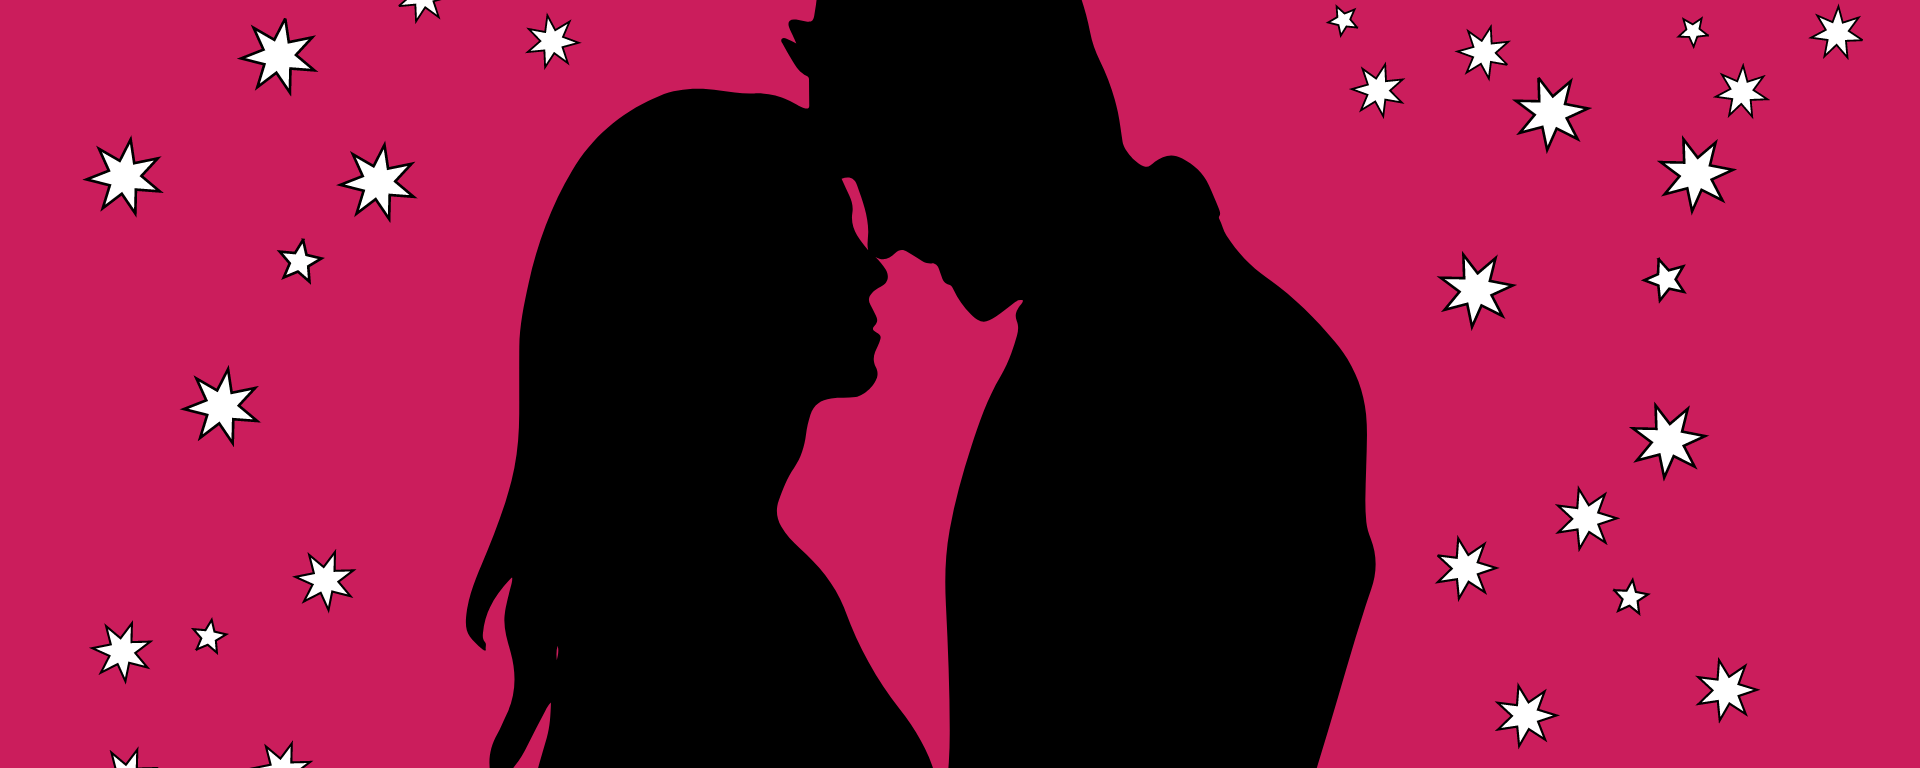 A couple on a pink background with sparkles